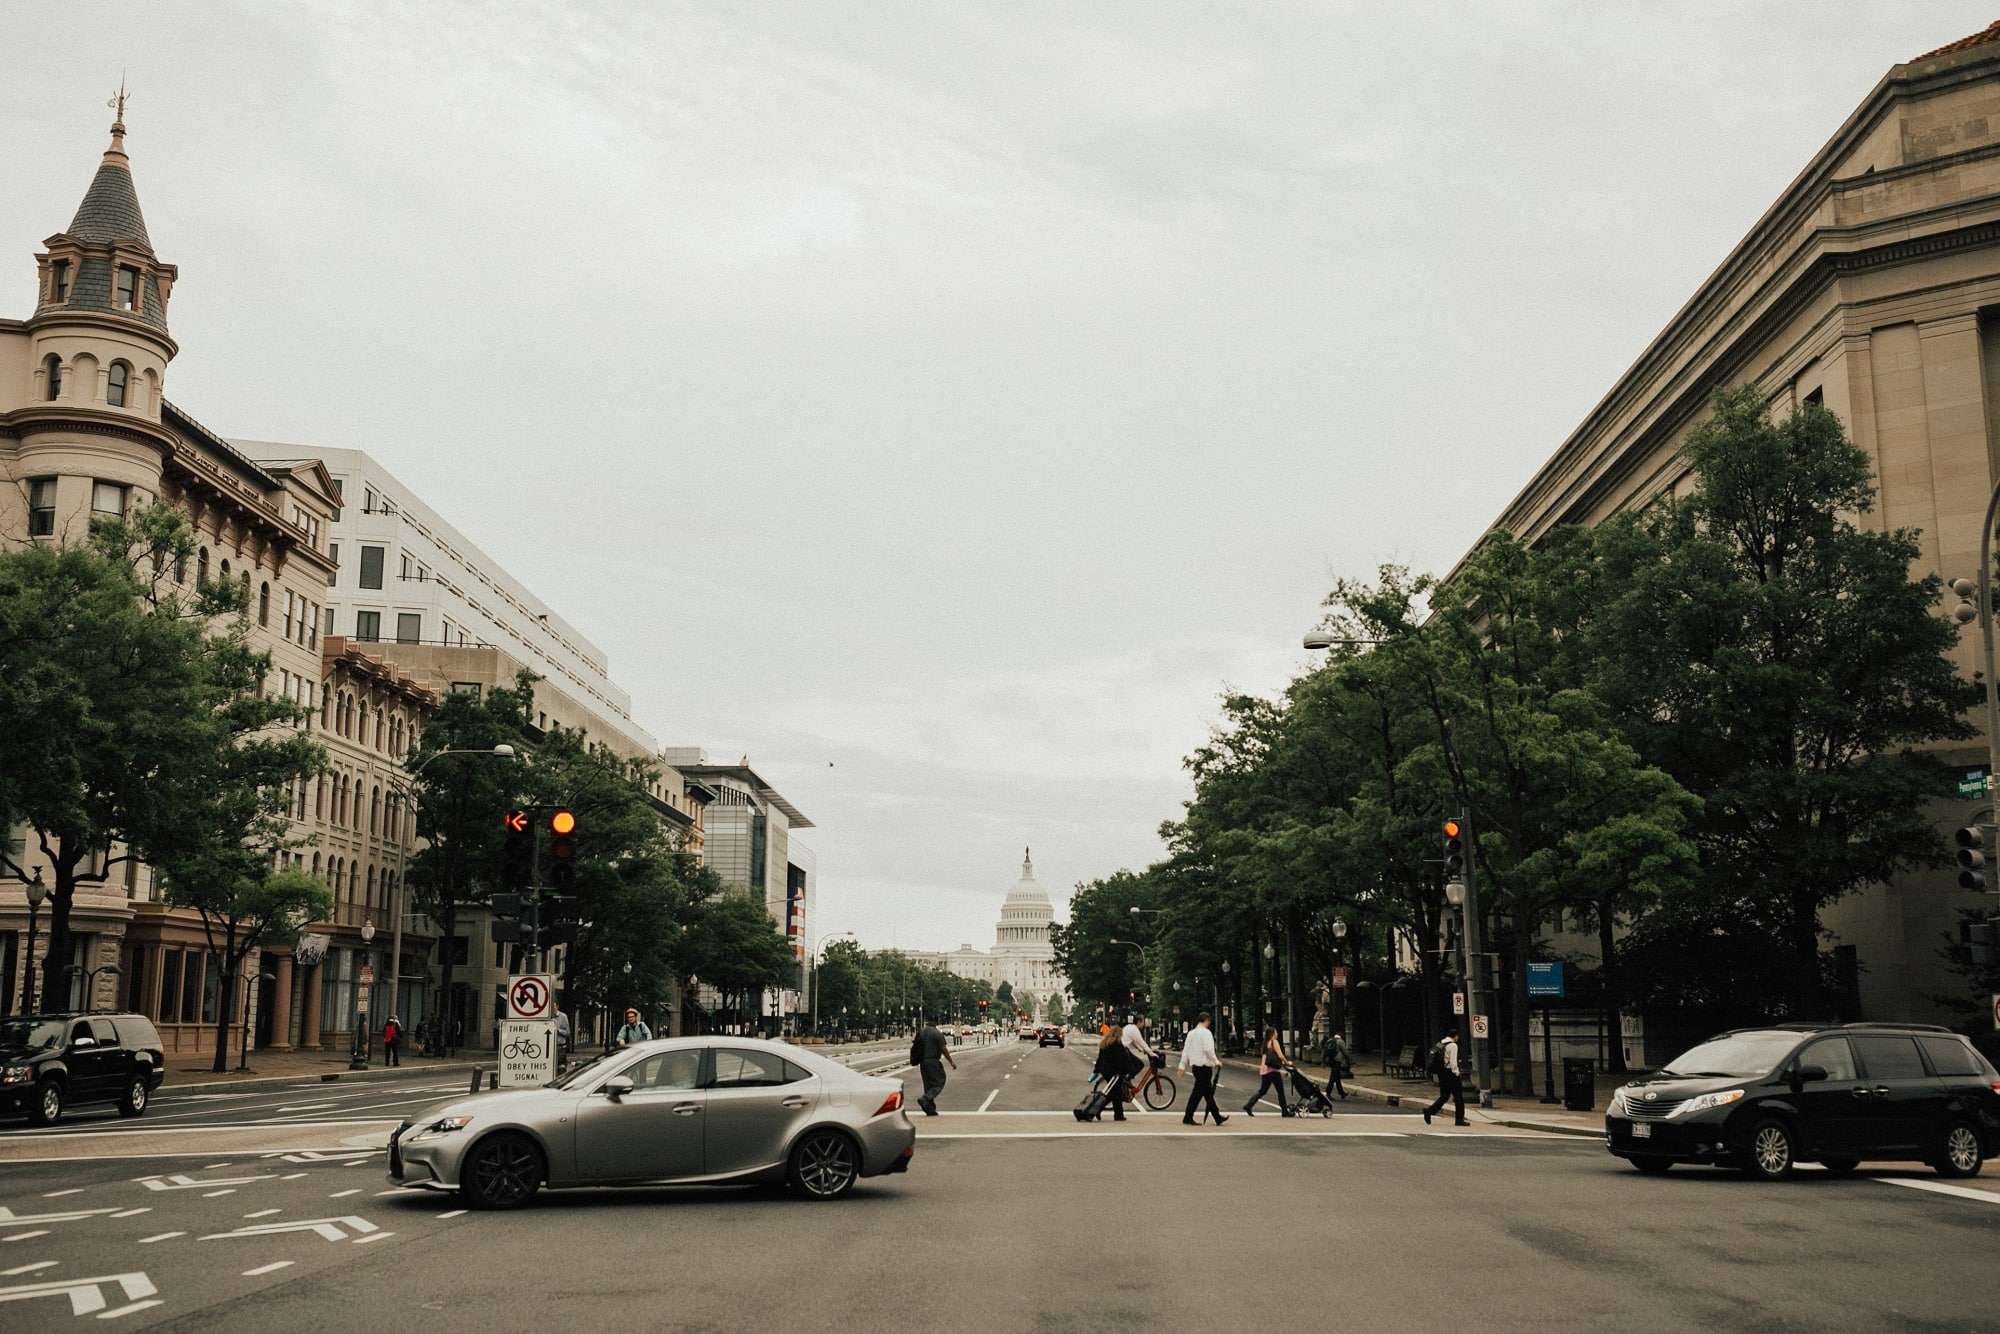 view of US Capitol from street